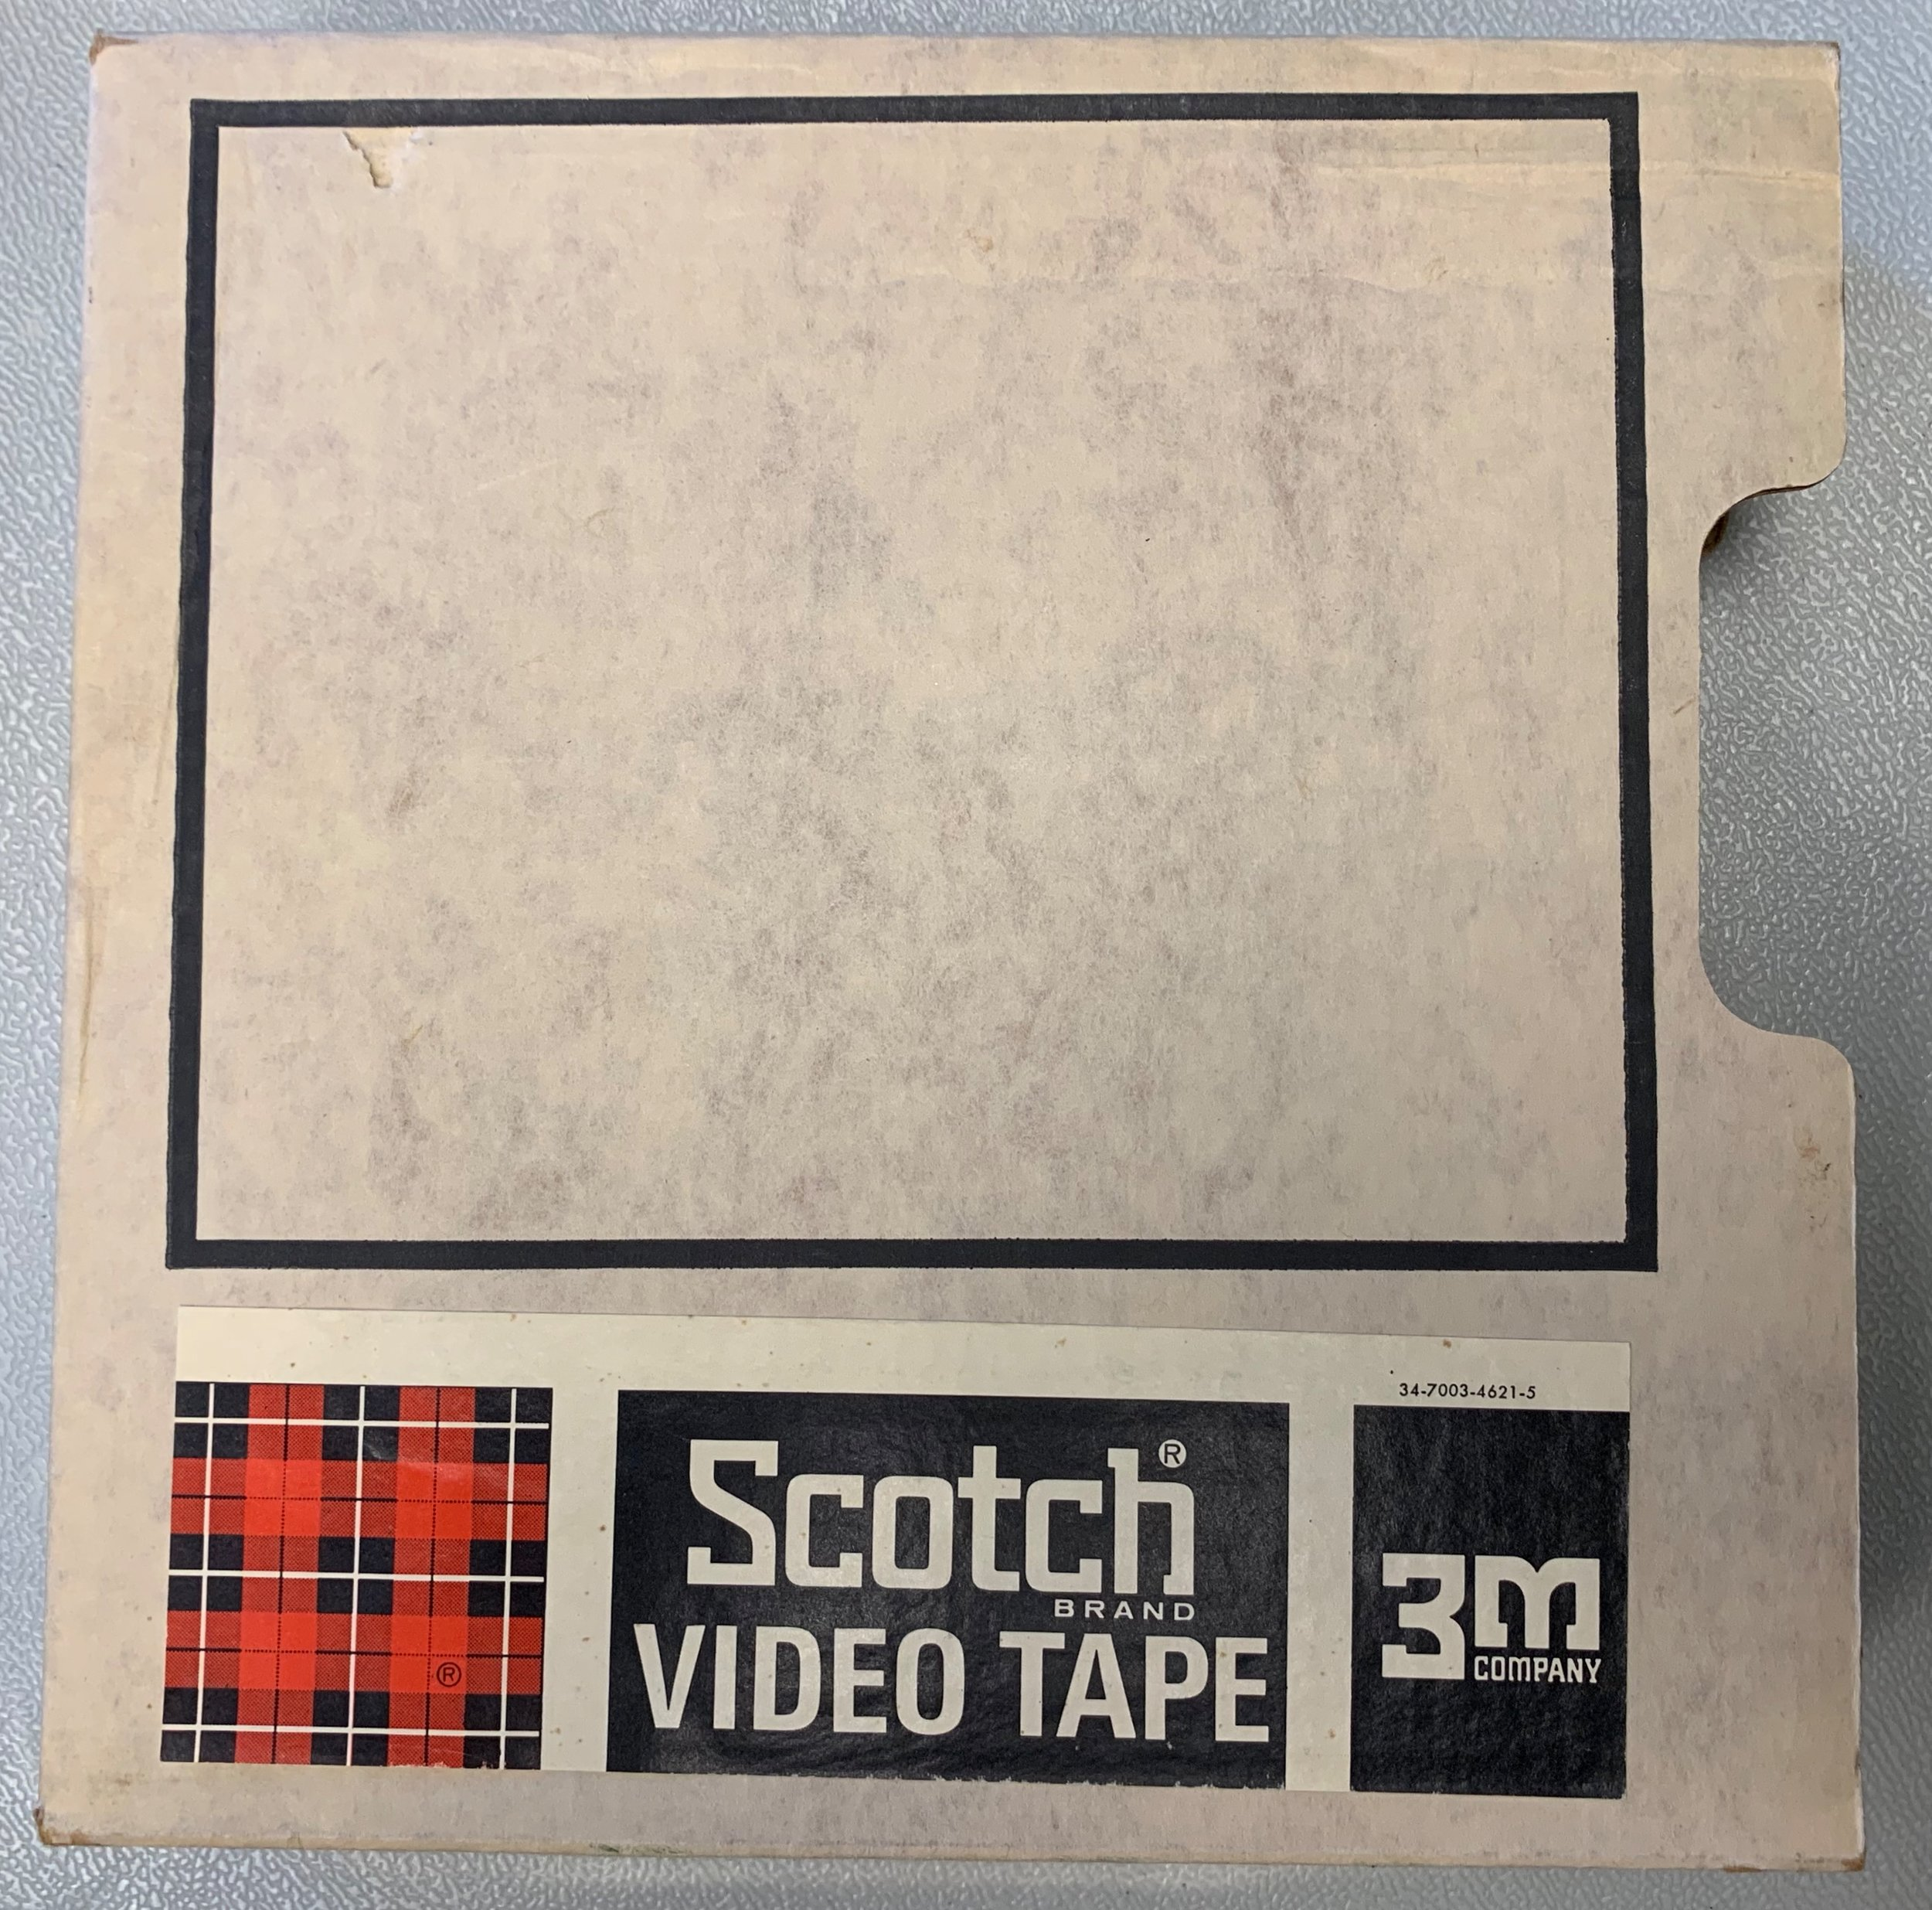 3M Scotch 1 inch cardboard box